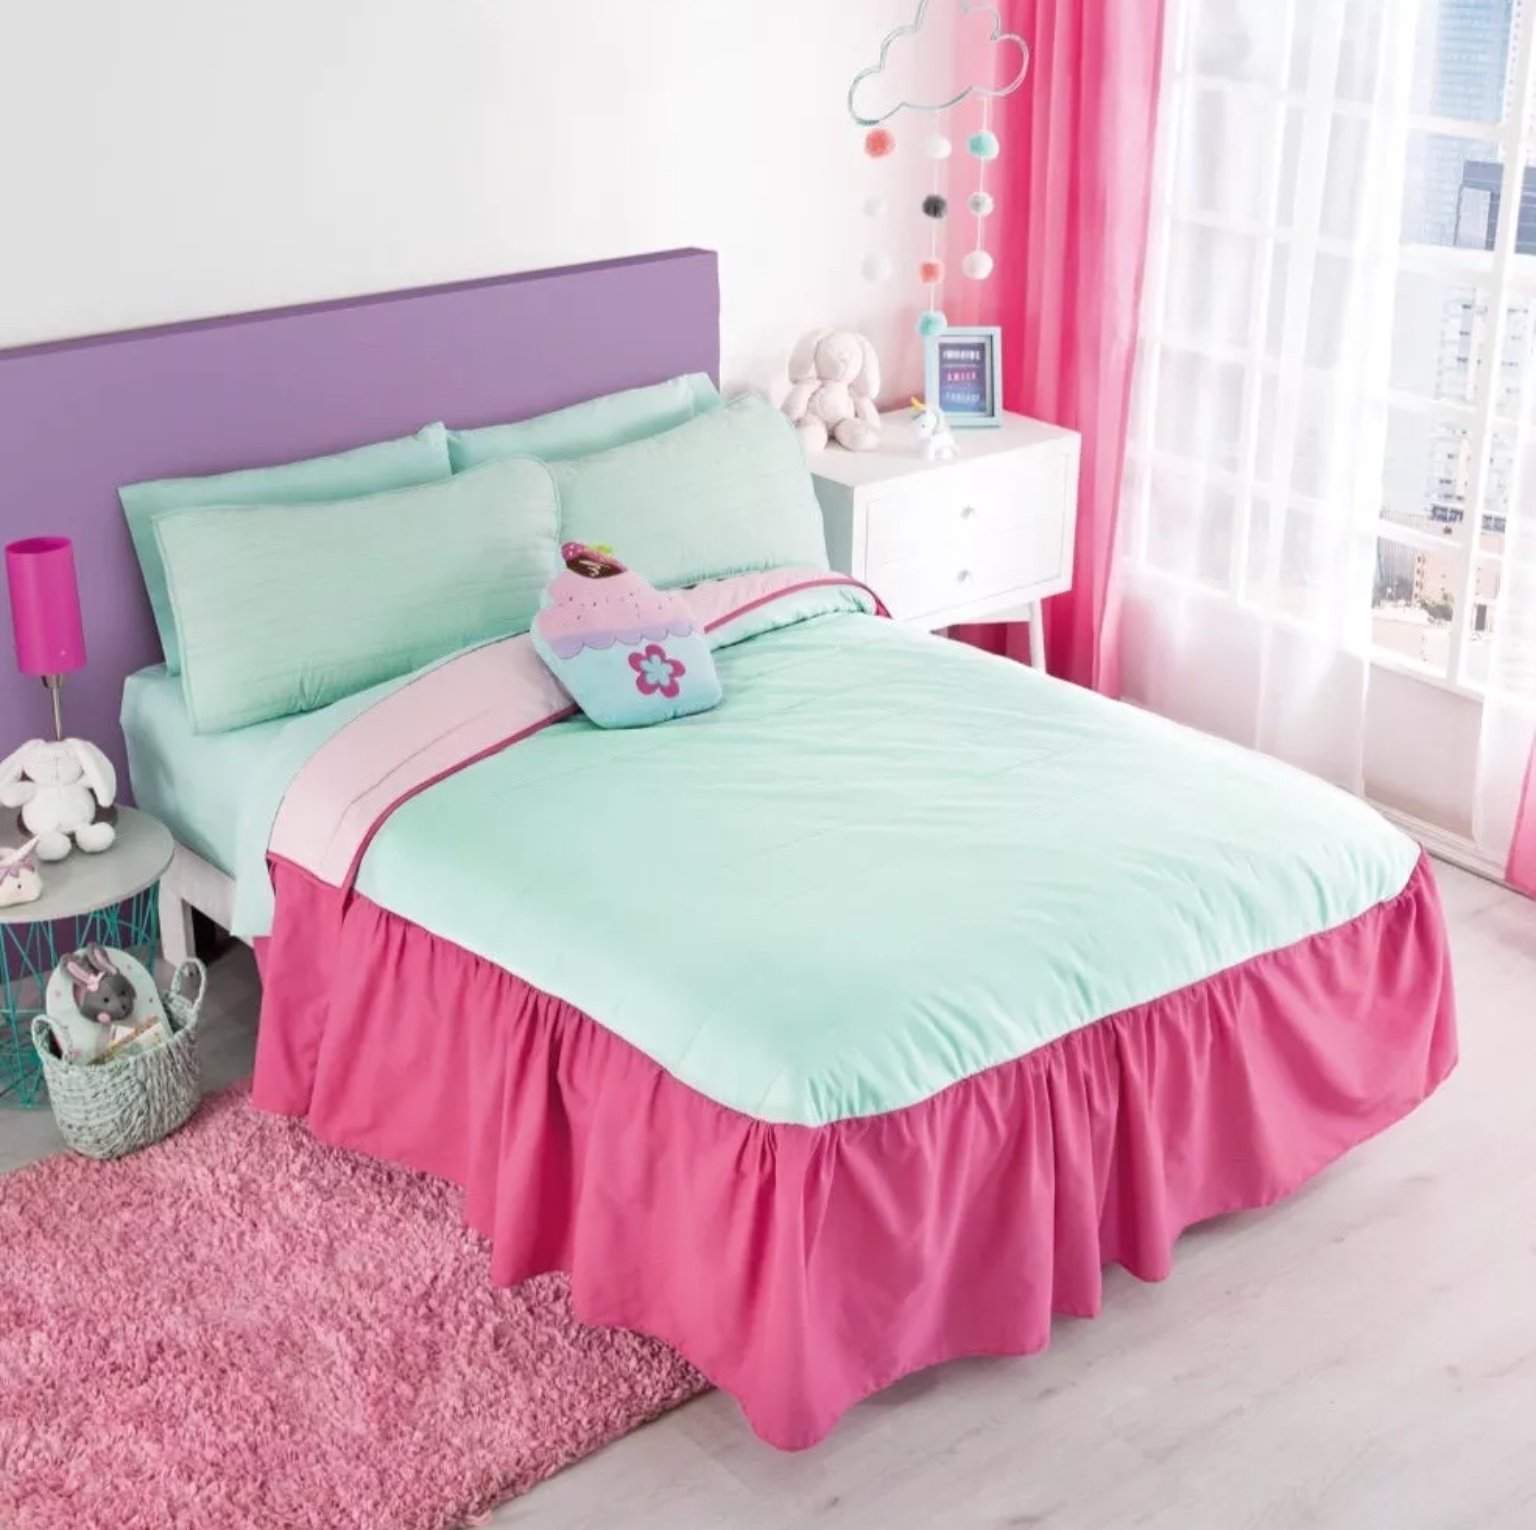 JORGE'S HOME FASHION NEW PRETTY COLLECTION UNICORNS CLOUDS STARS KIDS GIRLS REVERSIBLE BEDSPREAD SET 1 PCS TWIN SIZE